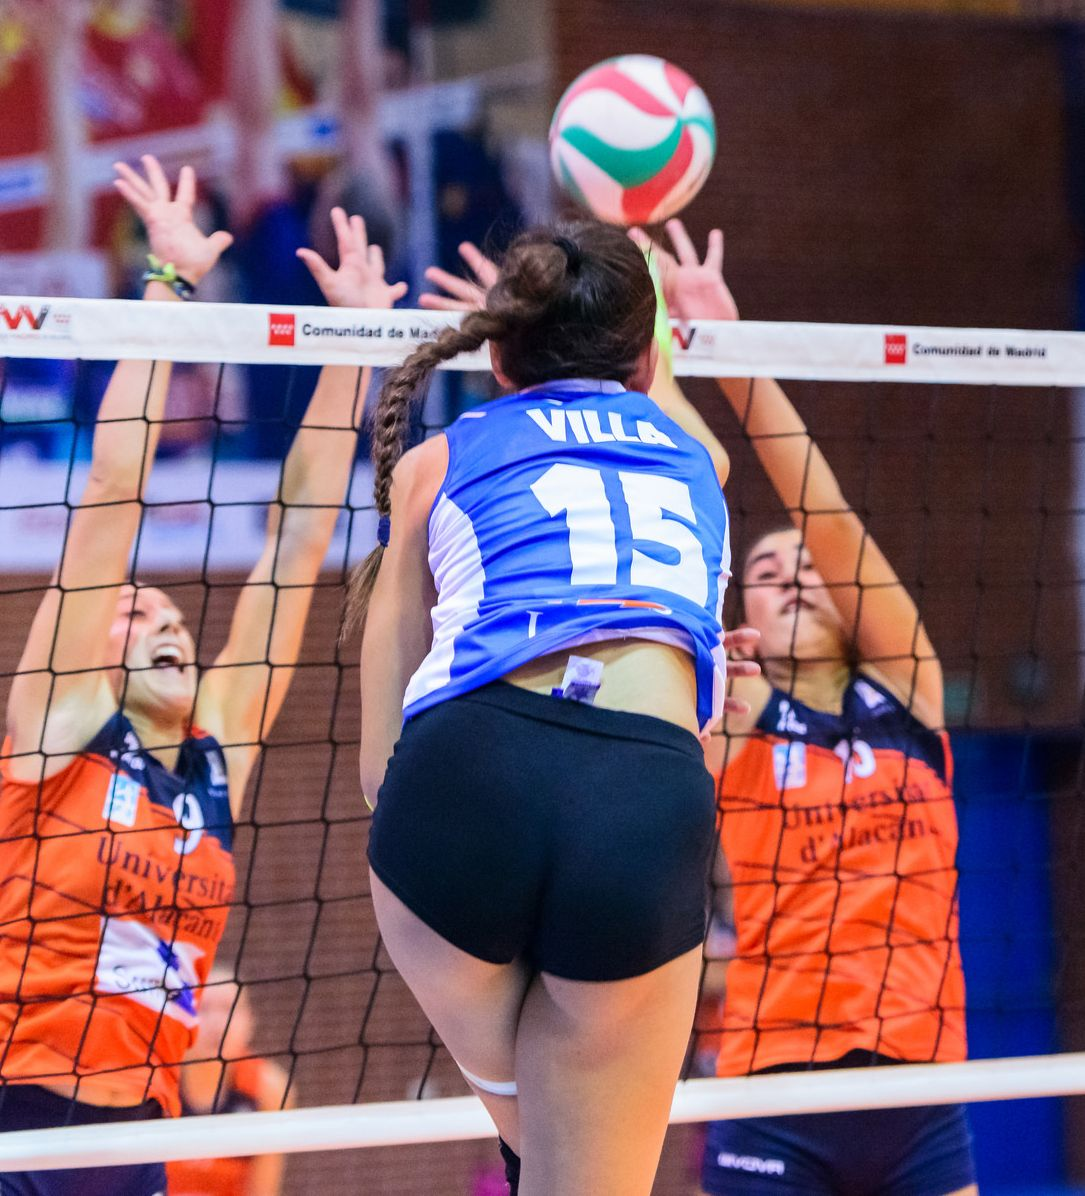 Pin By Valeria V V P On Voleibol Volleyball In 2020 Women Volleyball Female Volleyball Players Athletic Women